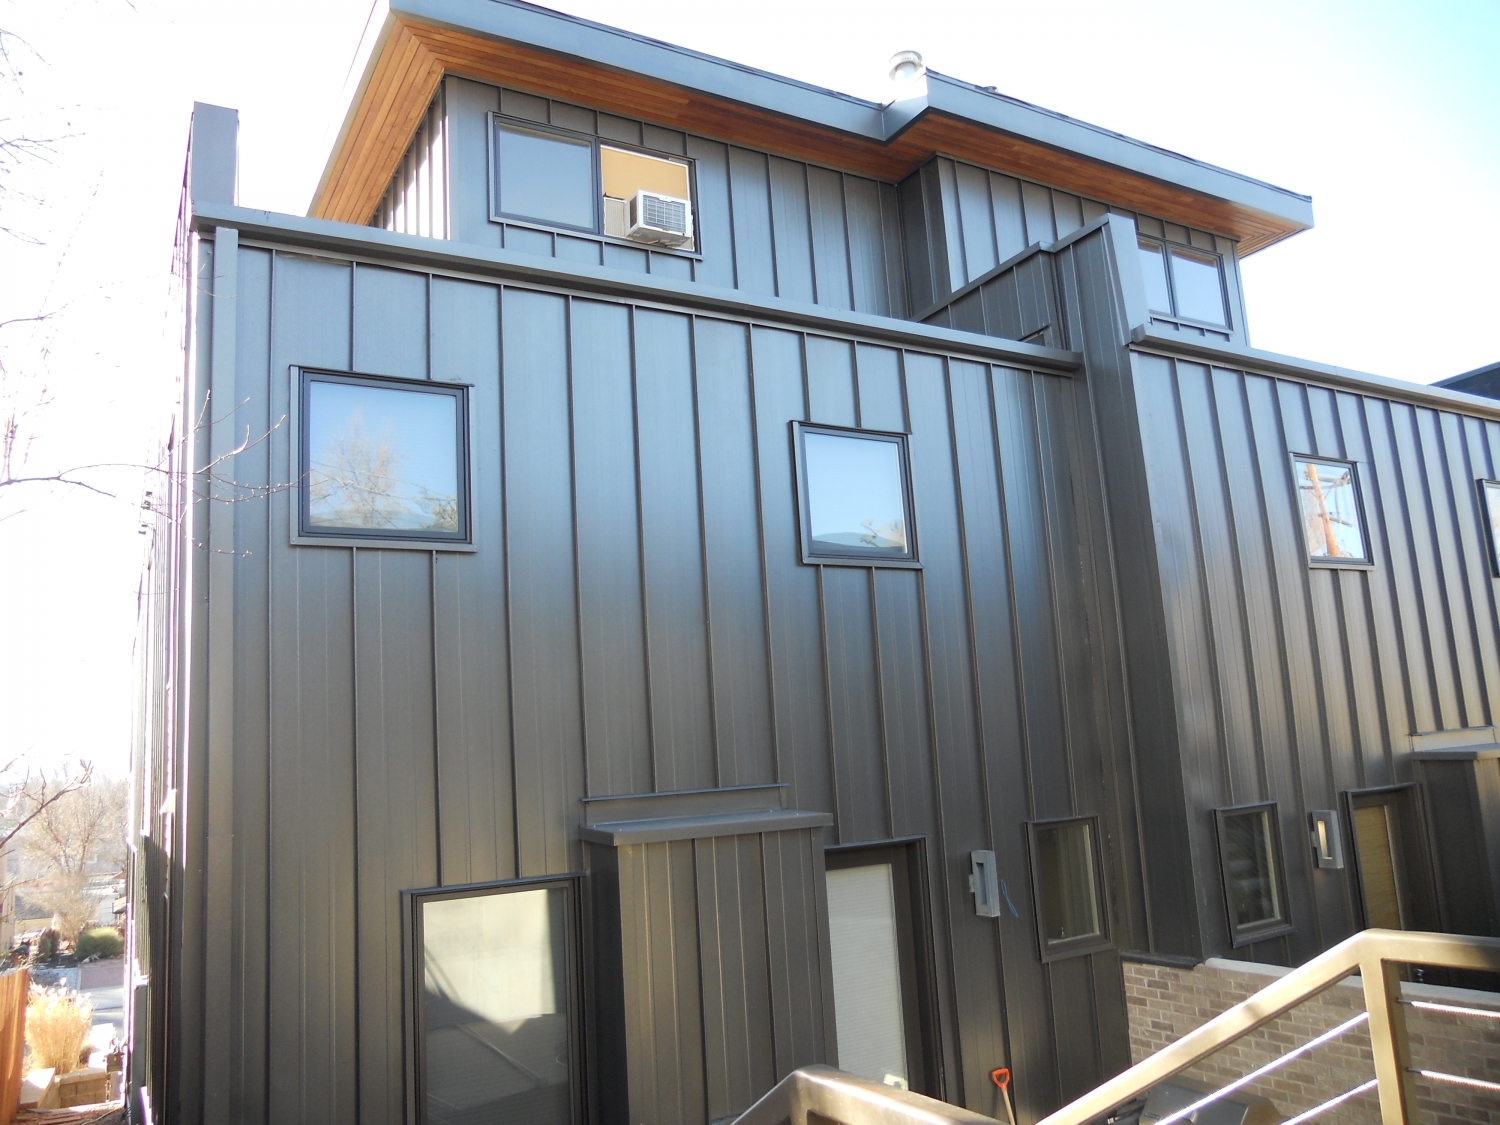 standing seam metal siding